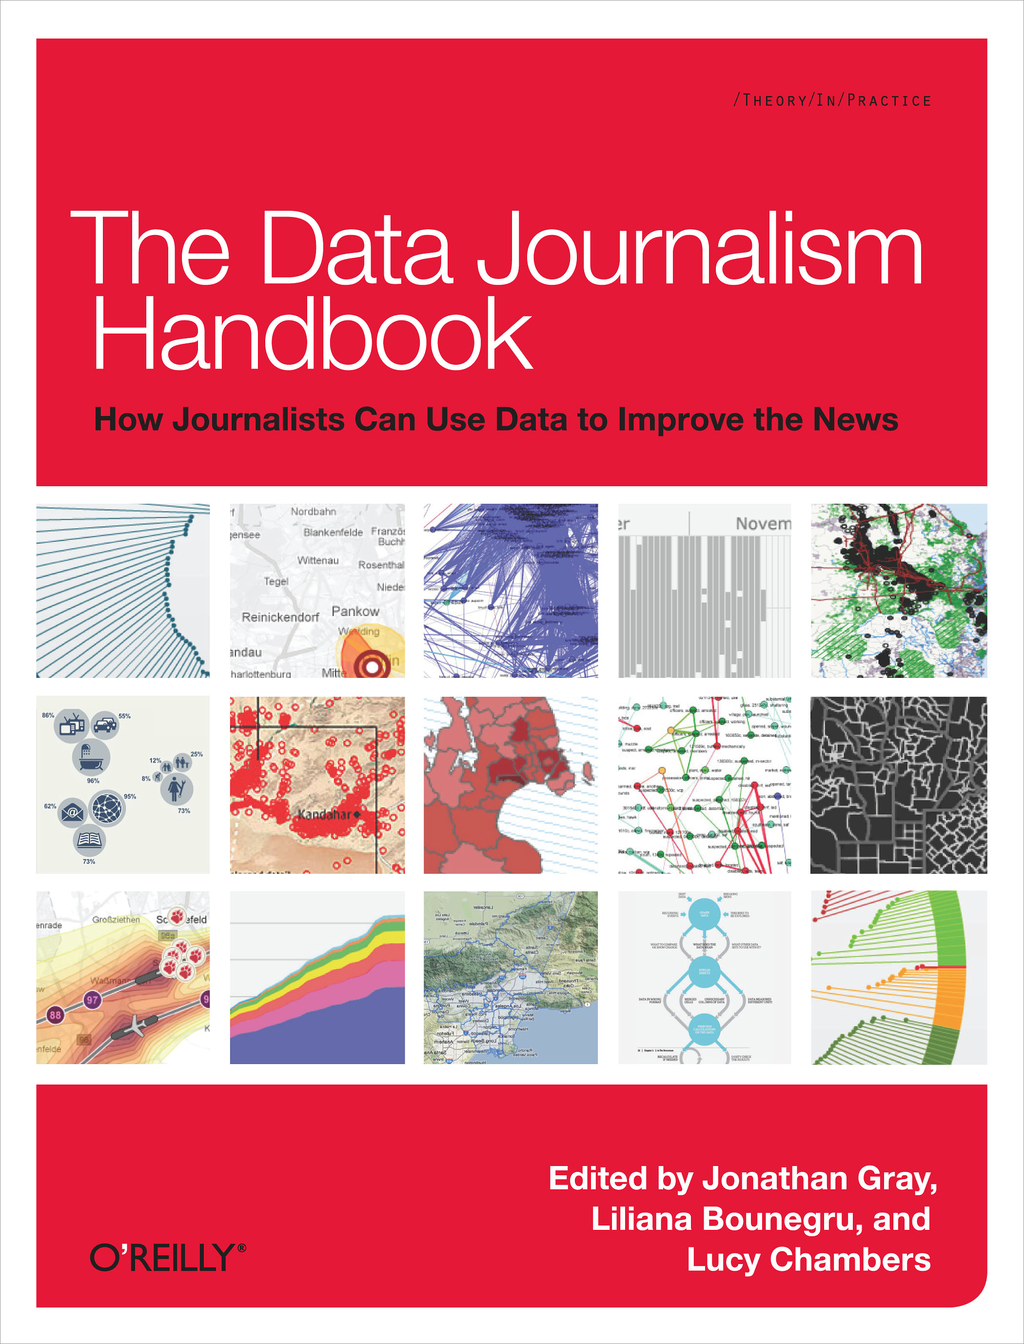 The Data Journalism Handbook By: Jonathan Gray,Liliana Bounegru,Lucy Chambers